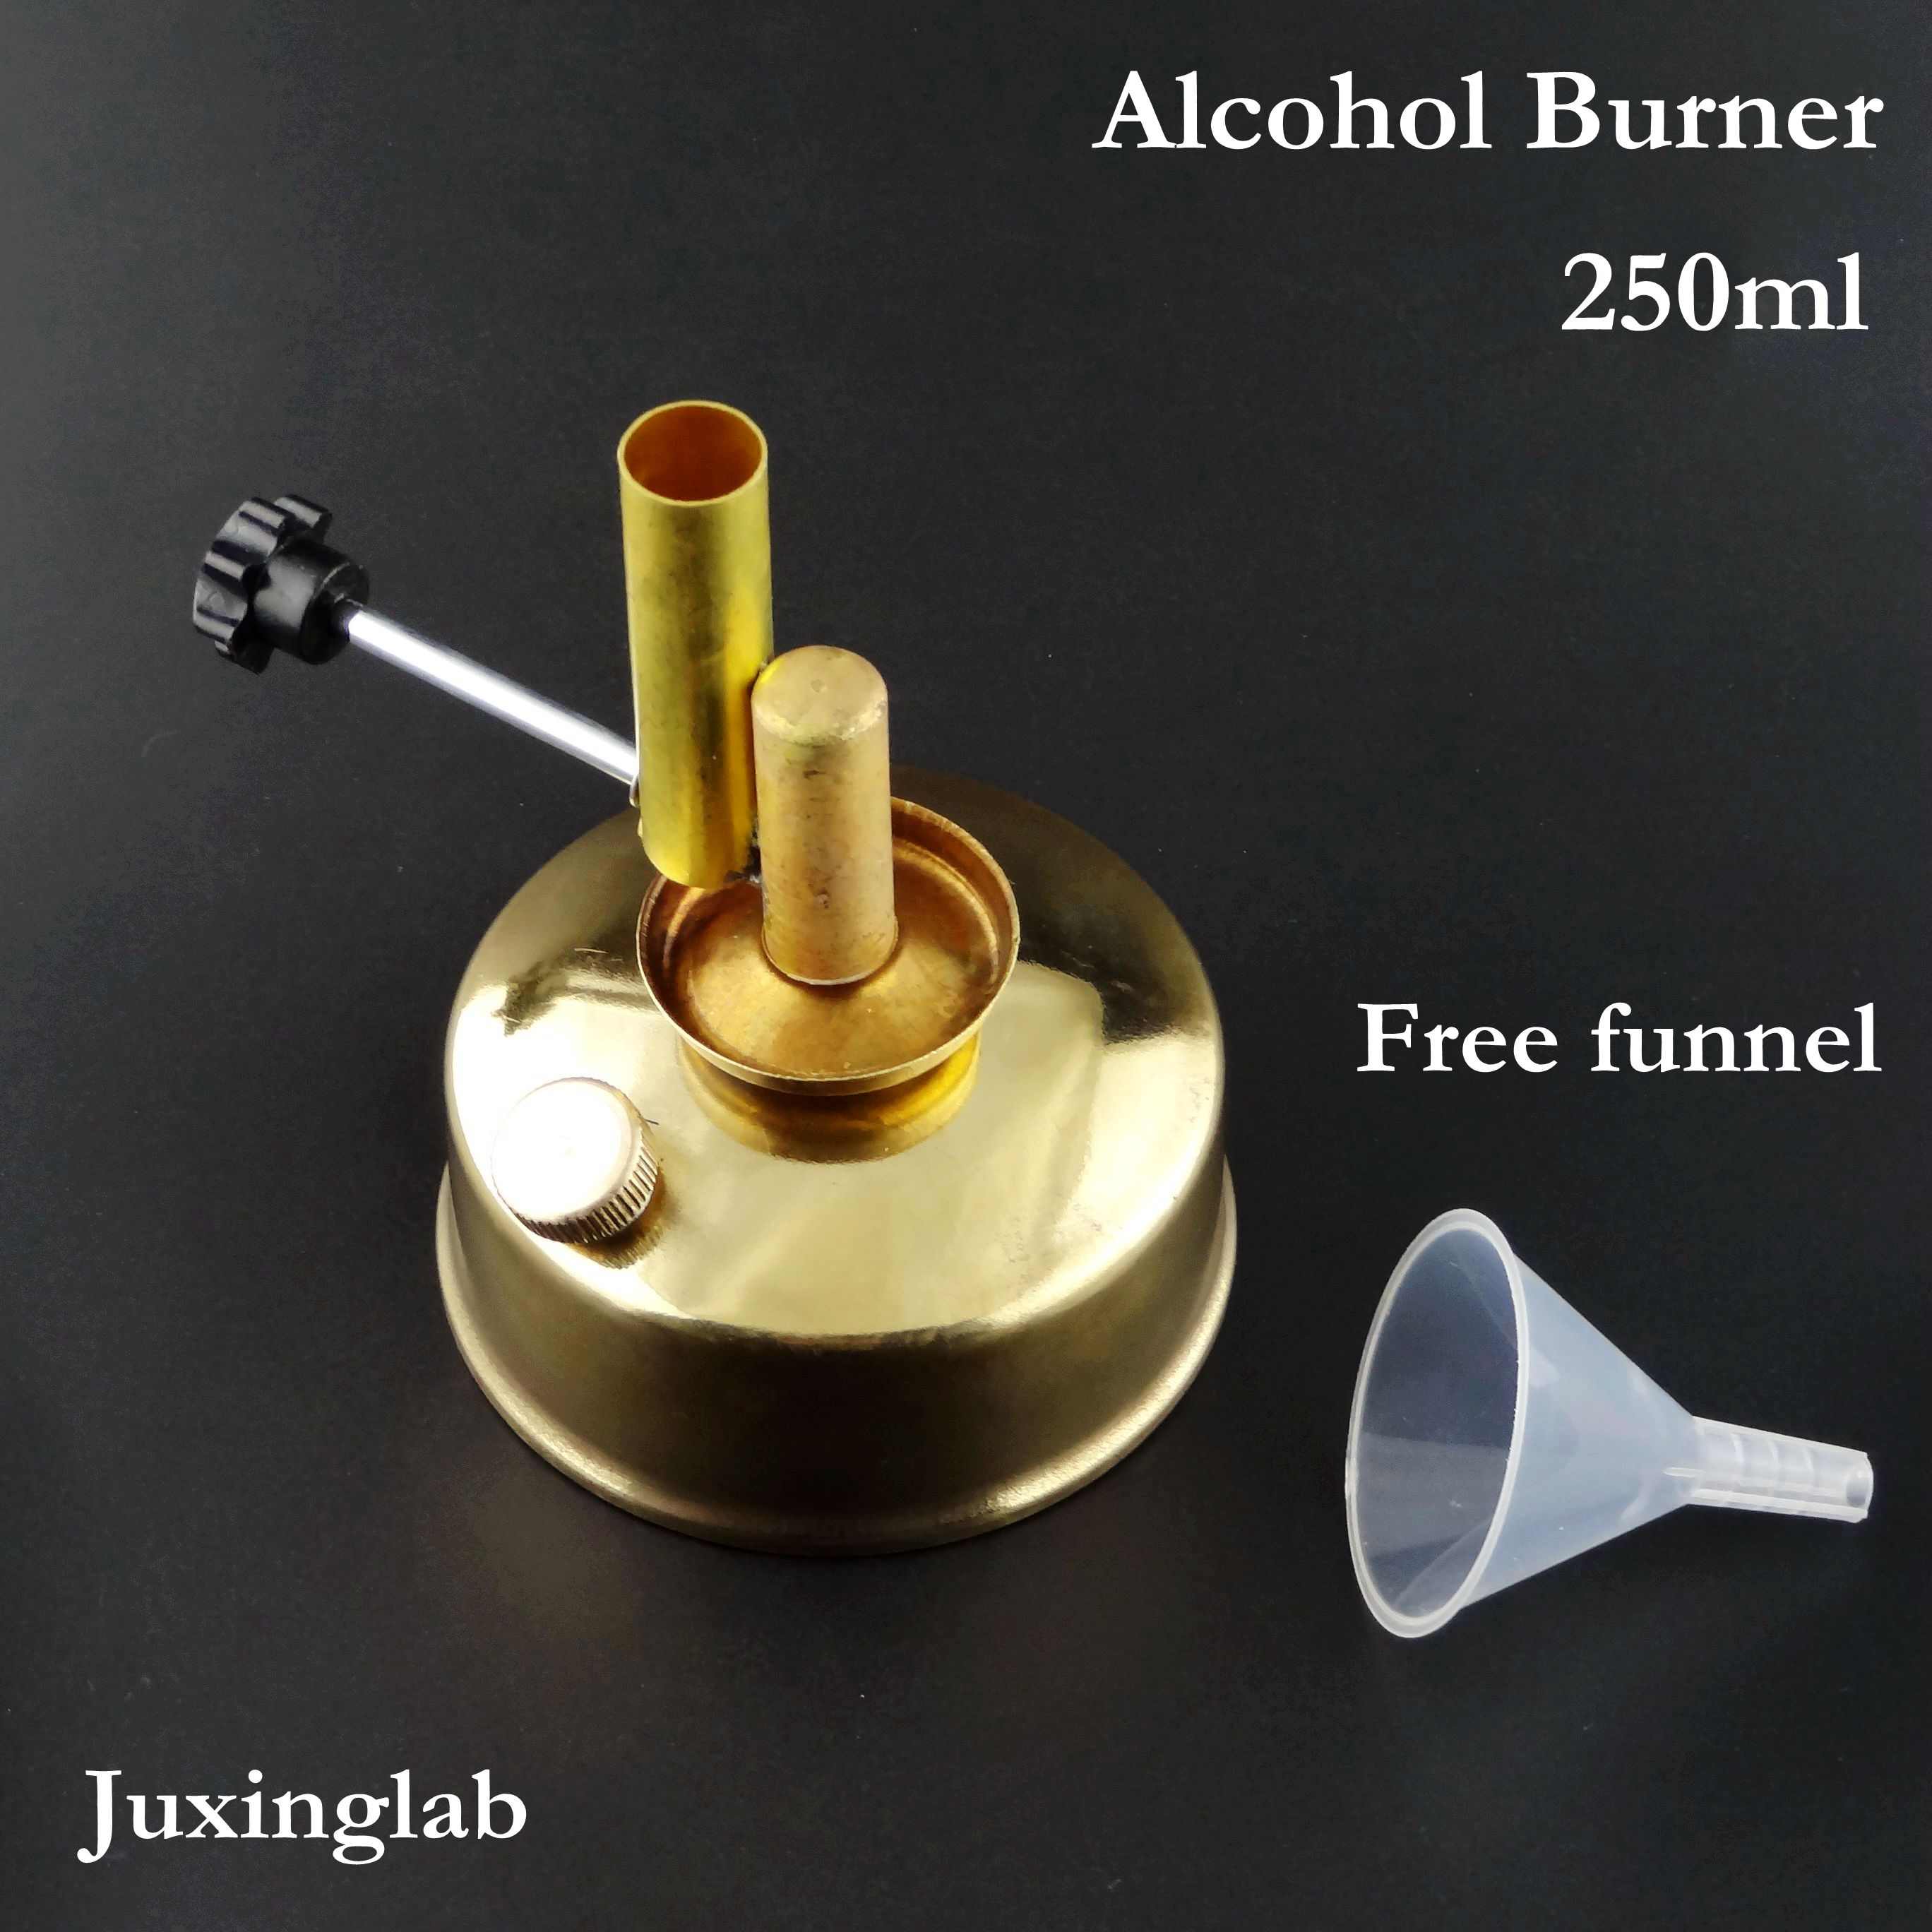 Alcohol Lamp Burner 250ml Made Of Brass ,copper Tirrill Burner Meker Burner Micro Brass Burner 250ml